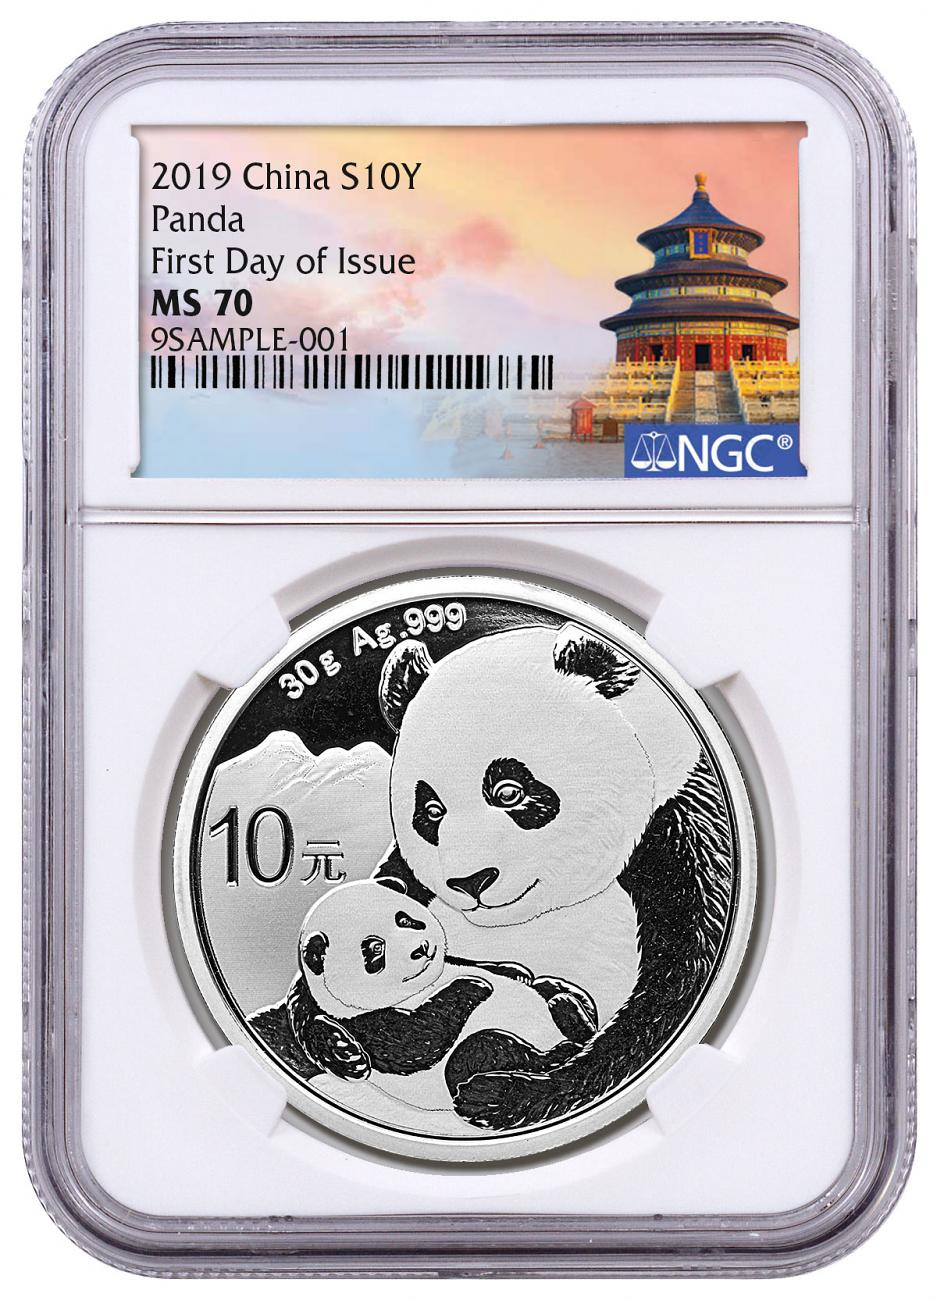 2019 China 30 g Silver Panda ¥10 Coin NGC MS70 FDI Exclusive Temple Label